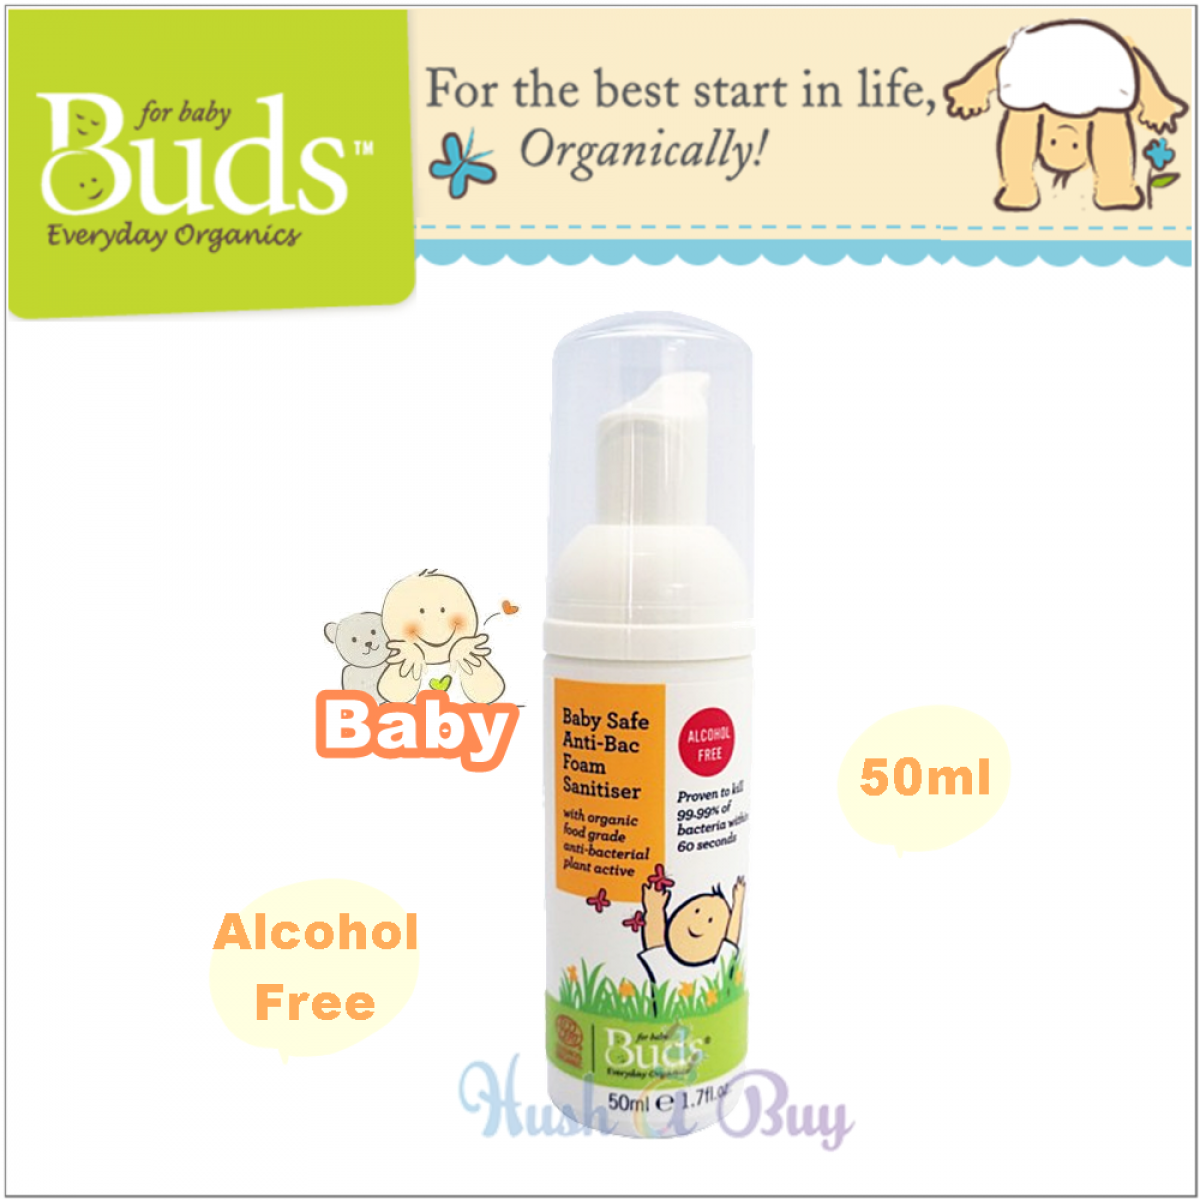 Buds Anti-Bac Foam Sanitiser 50ml (Rinse Free)